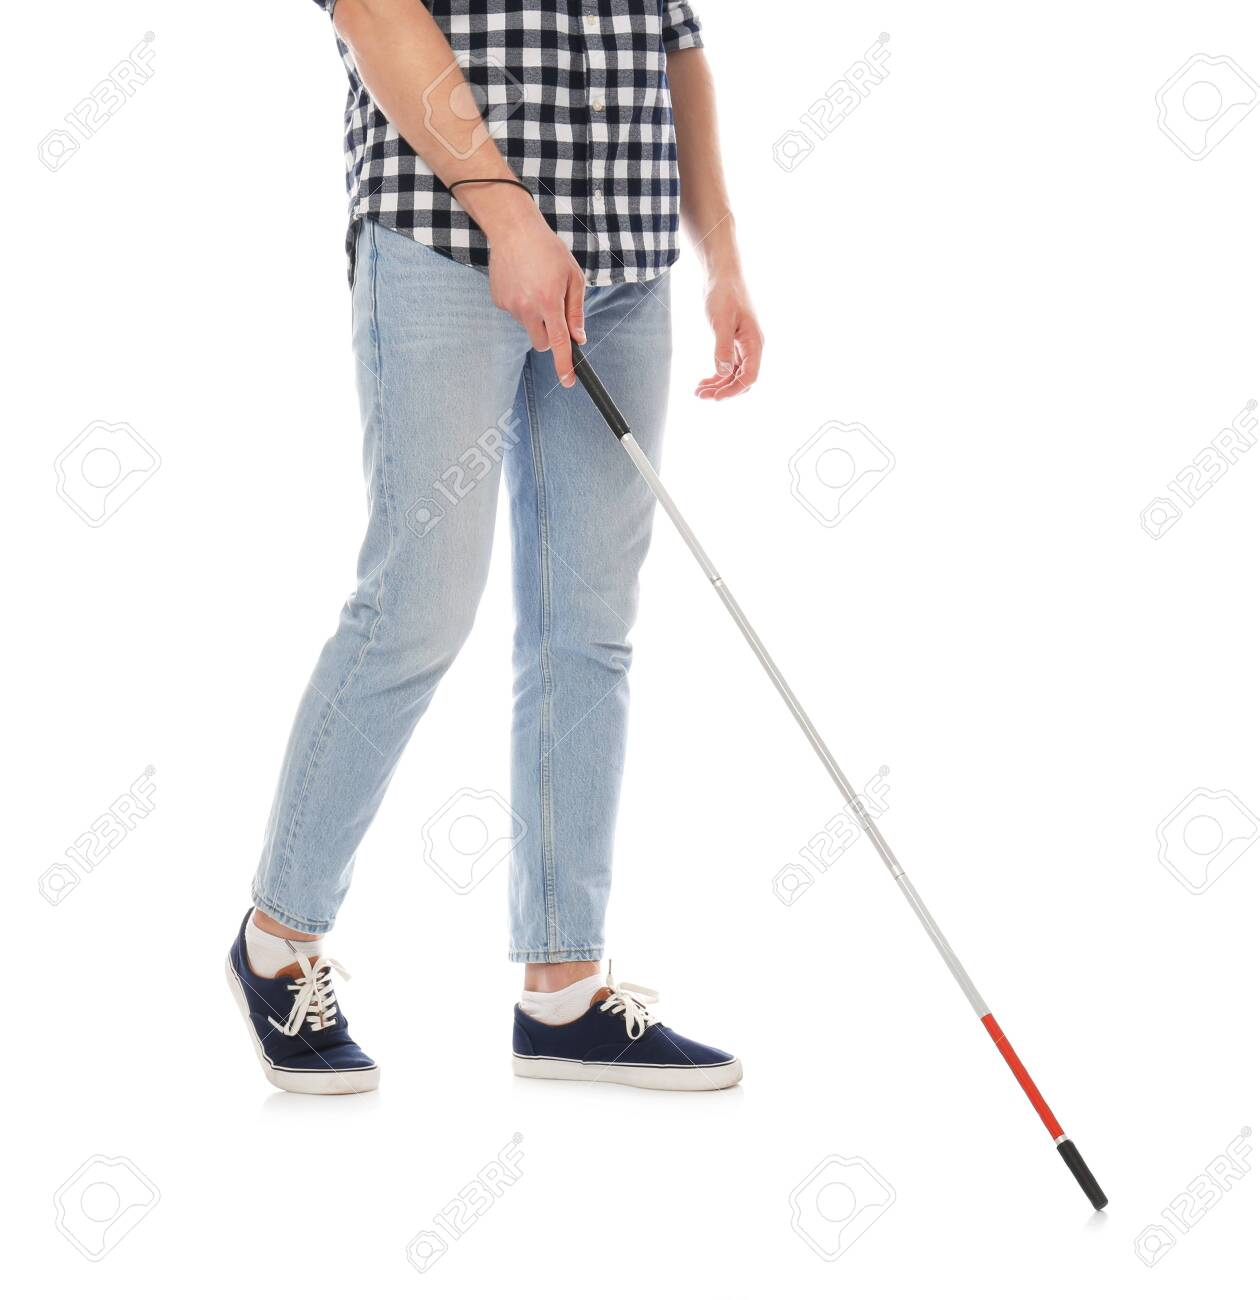 Blind Person With Long Cane Walking On White Background Stock Photo Picture And Royalty Free Image Image 125161094